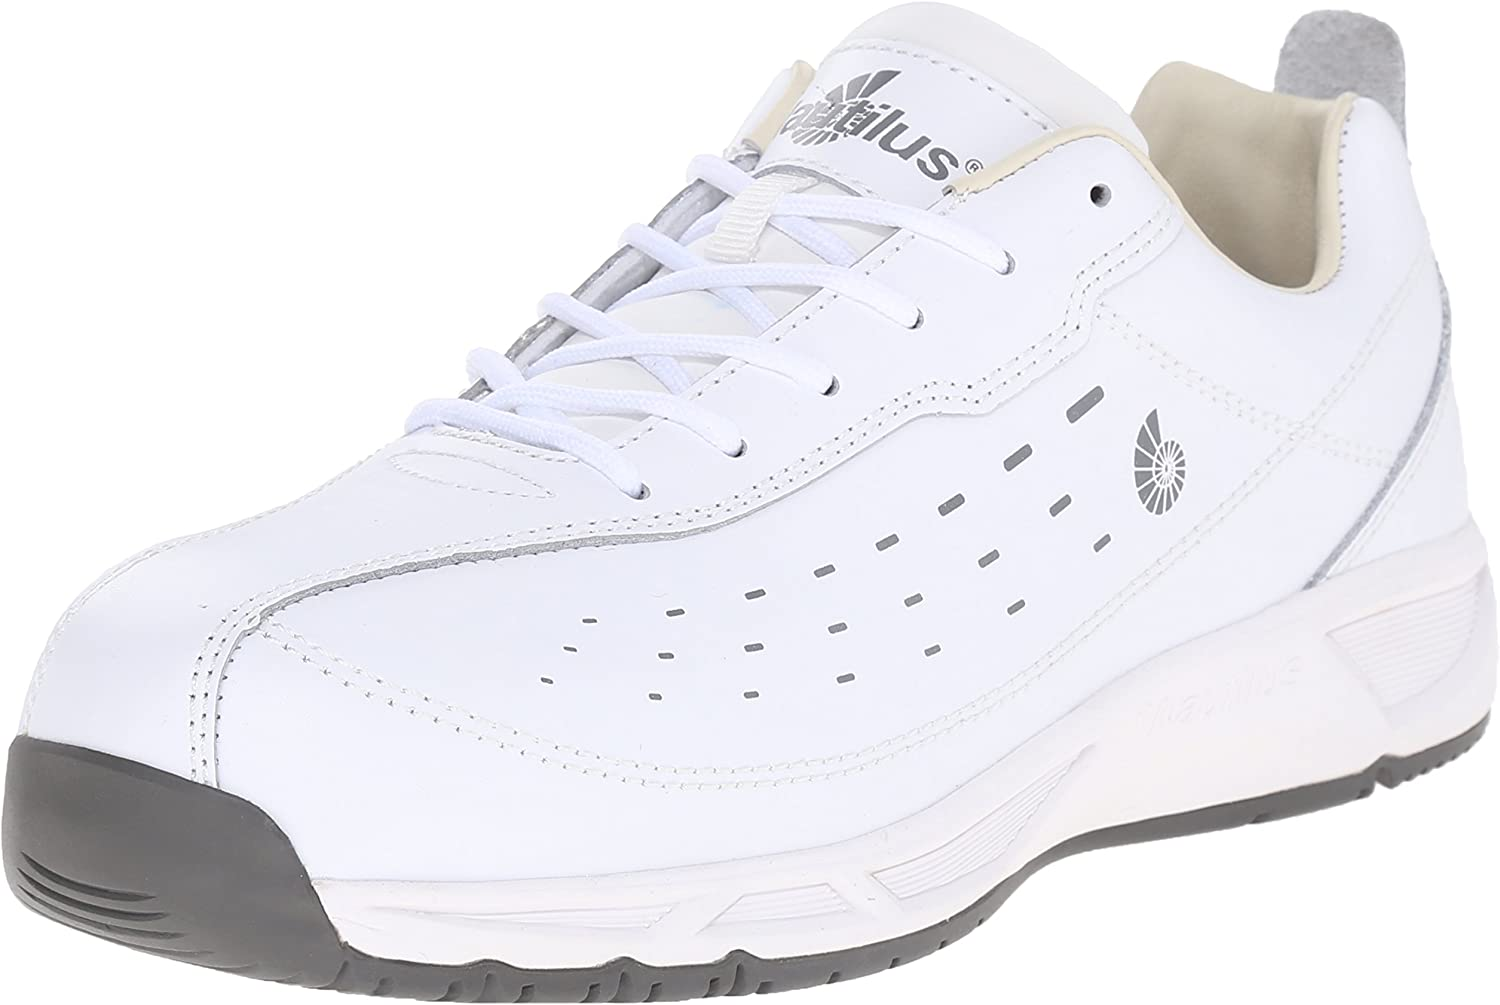 Nautilus 4041 ESD No Exposed Metal Soft Toe Clean Room Athletic Shoe